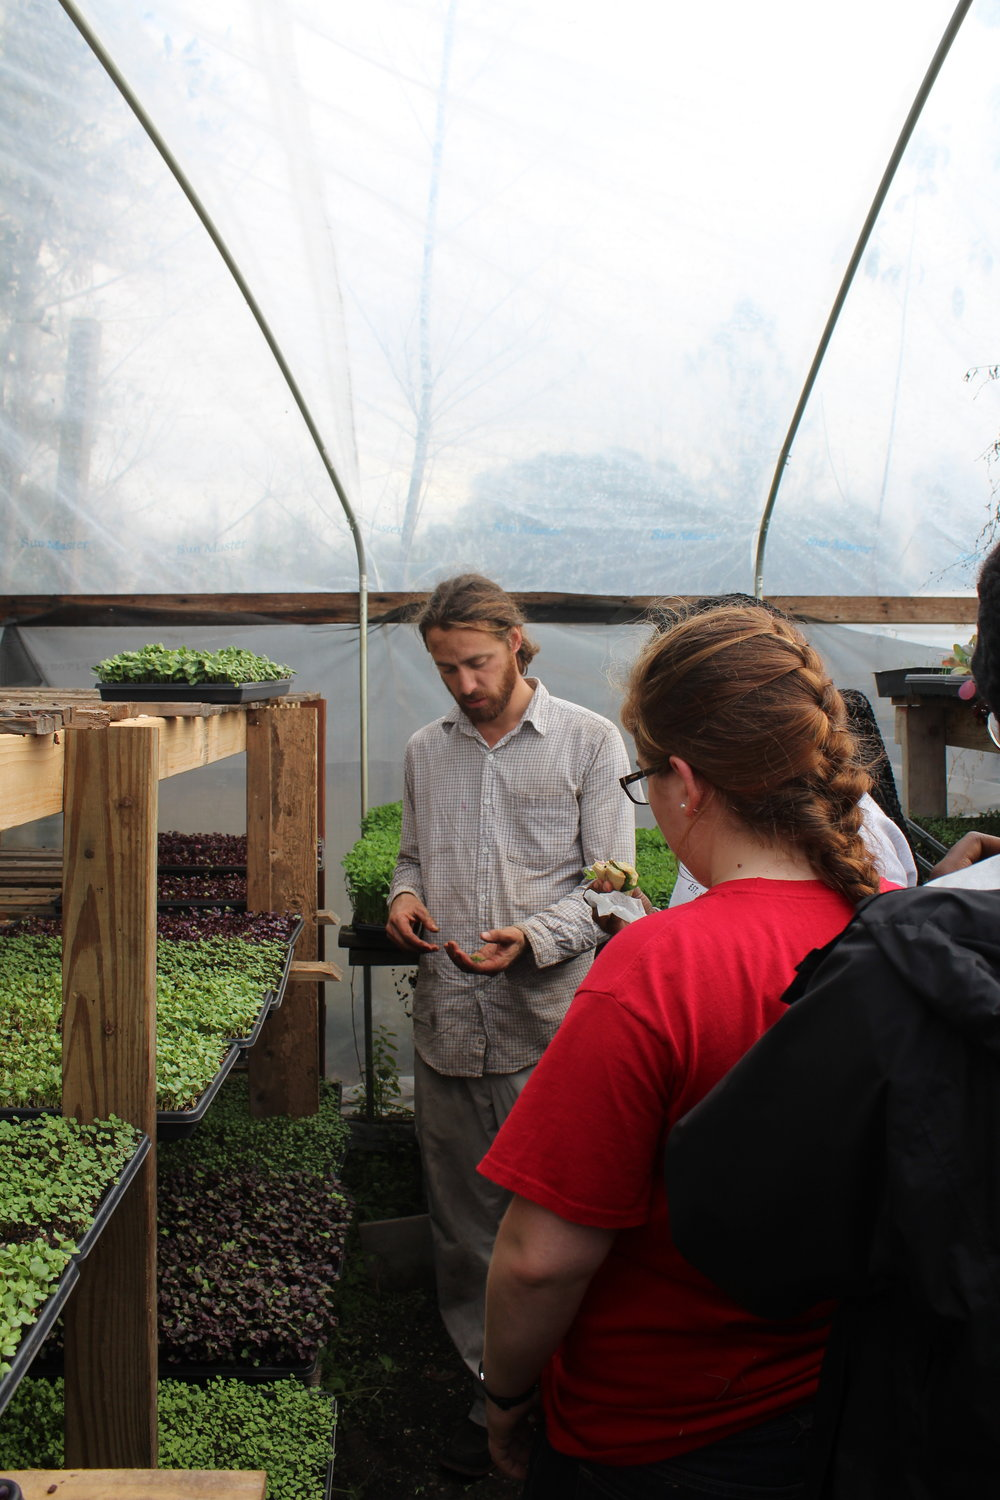 Chris with Vertu Farm talking with UGA students about microgreens and sustainable agriculture